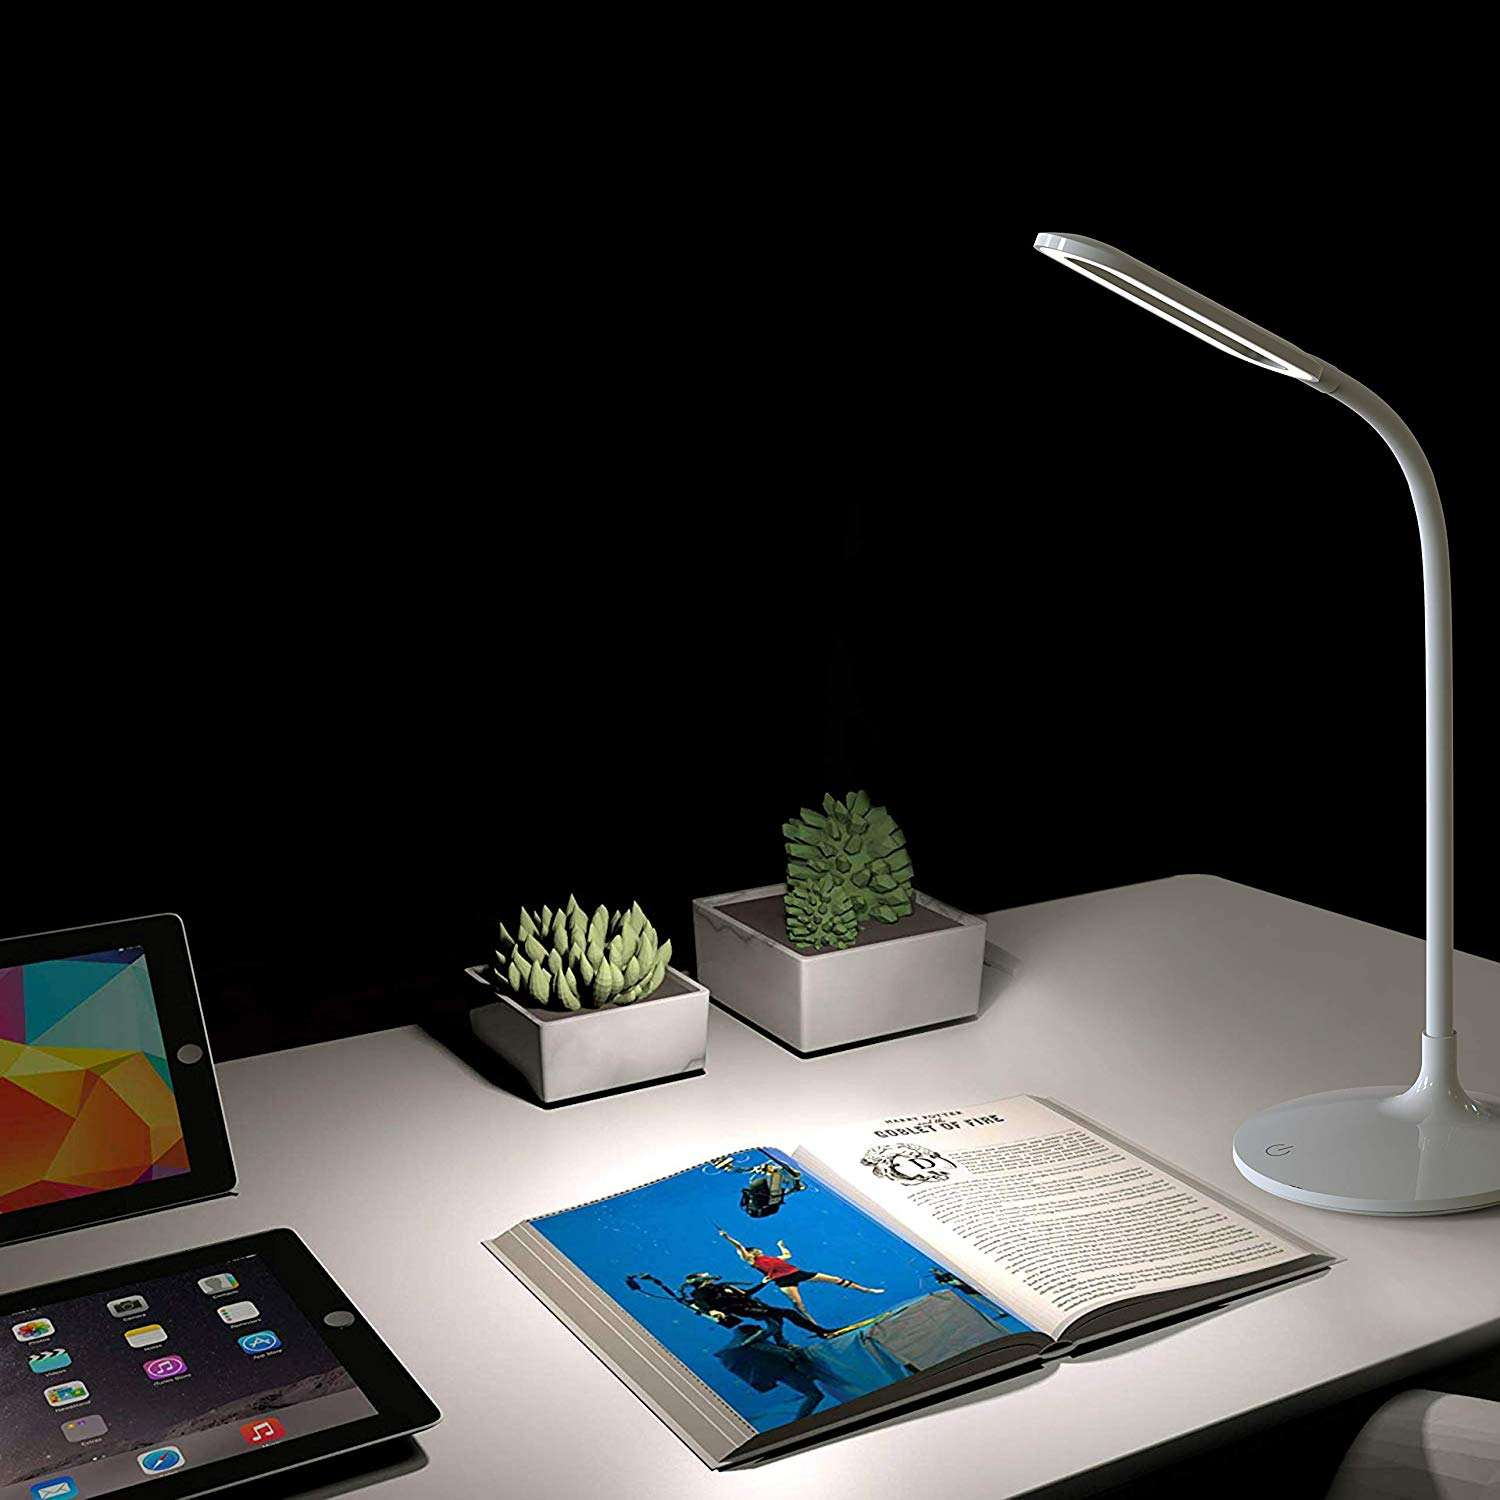 Biumart touch sensor 360 degree rotation Eye Protection USB rechargeable Flexible swan neck Bedside circle LED Reading Desk Lamp